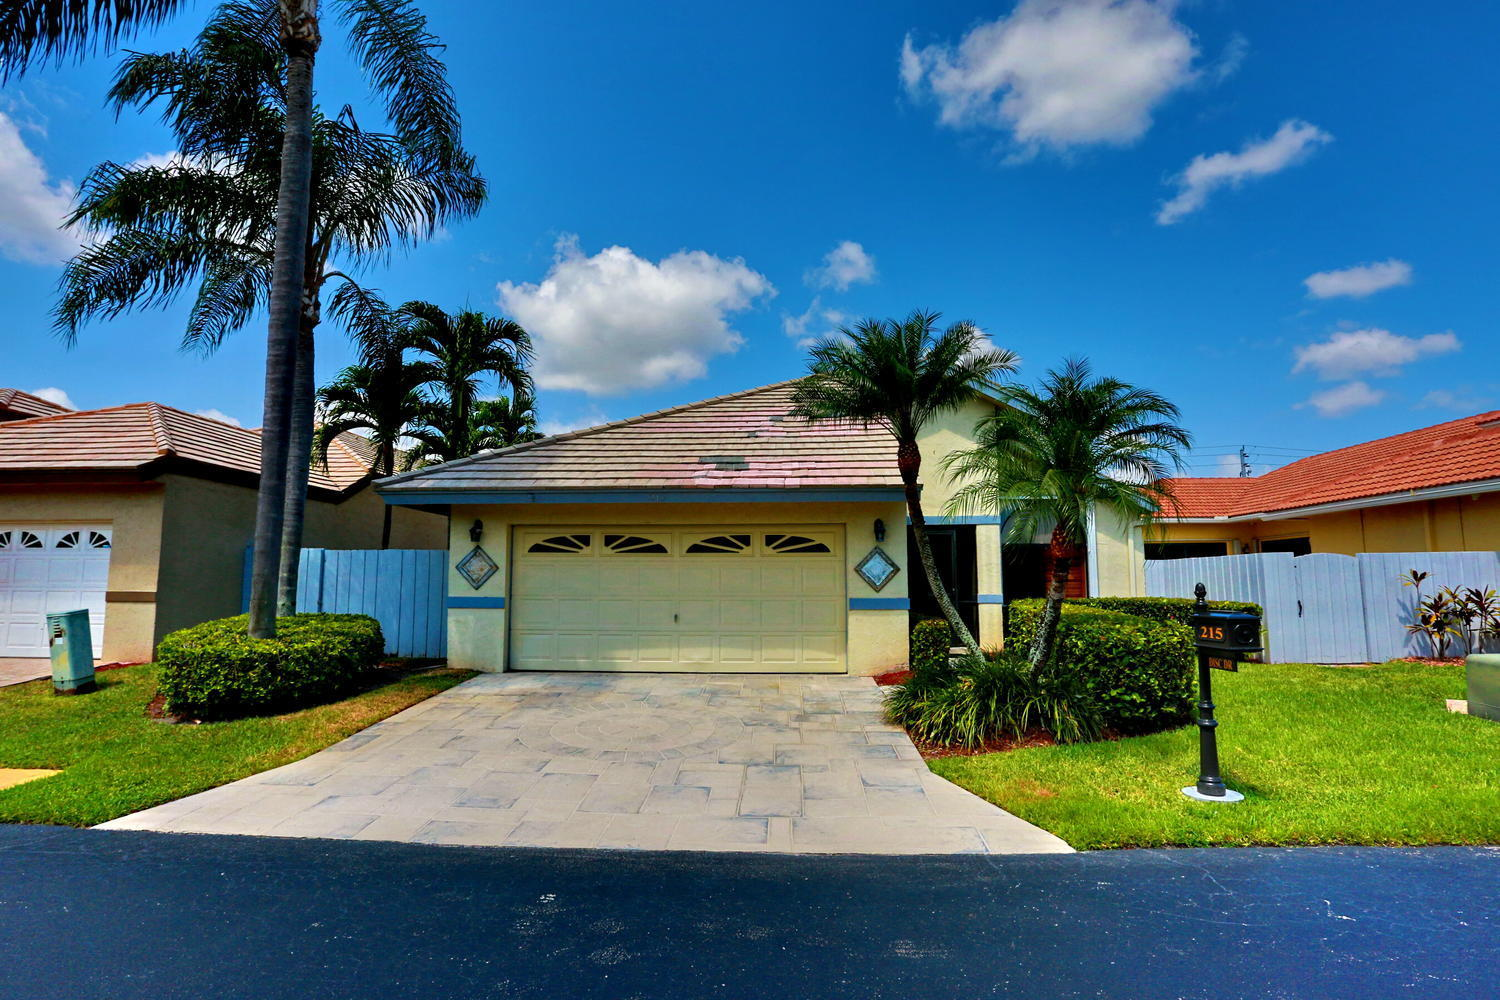 Photo of 215 Disc Drive, Boynton Beach, FL 33436